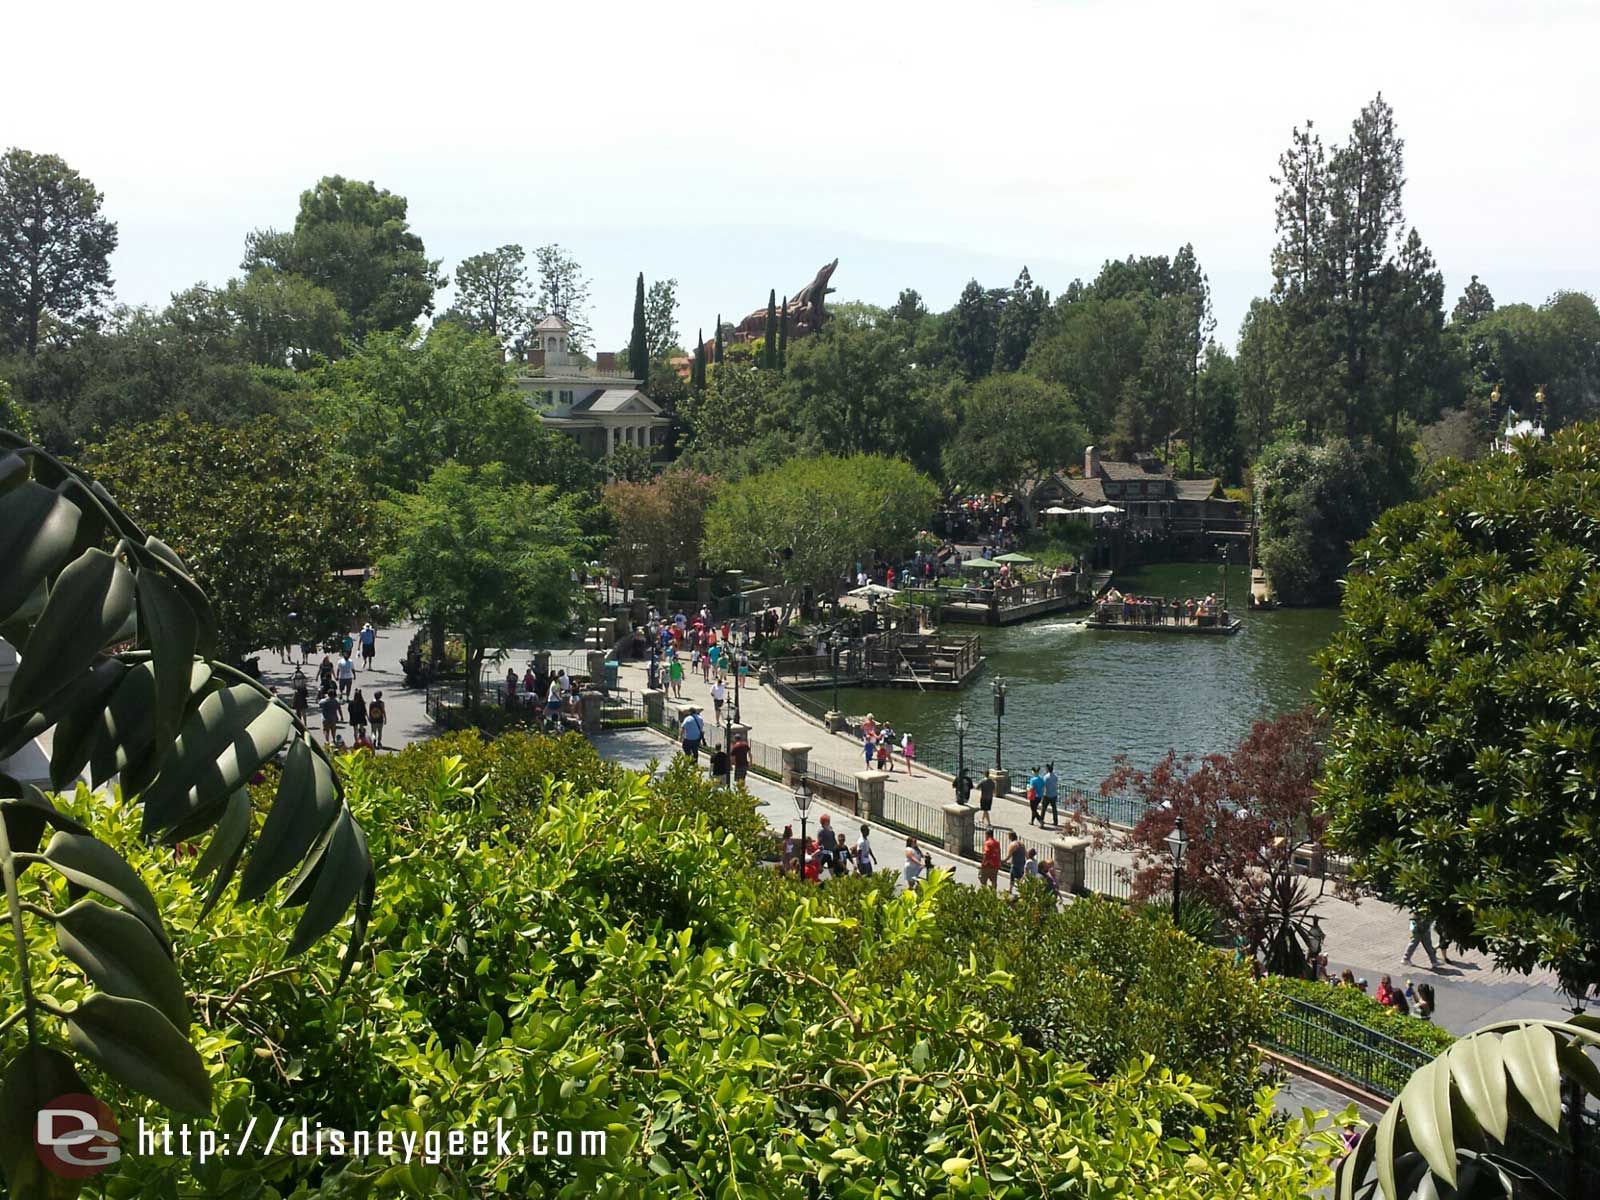 Looking towards the Rivers of America and the Haunted Mansion from the tree house #Disneyland